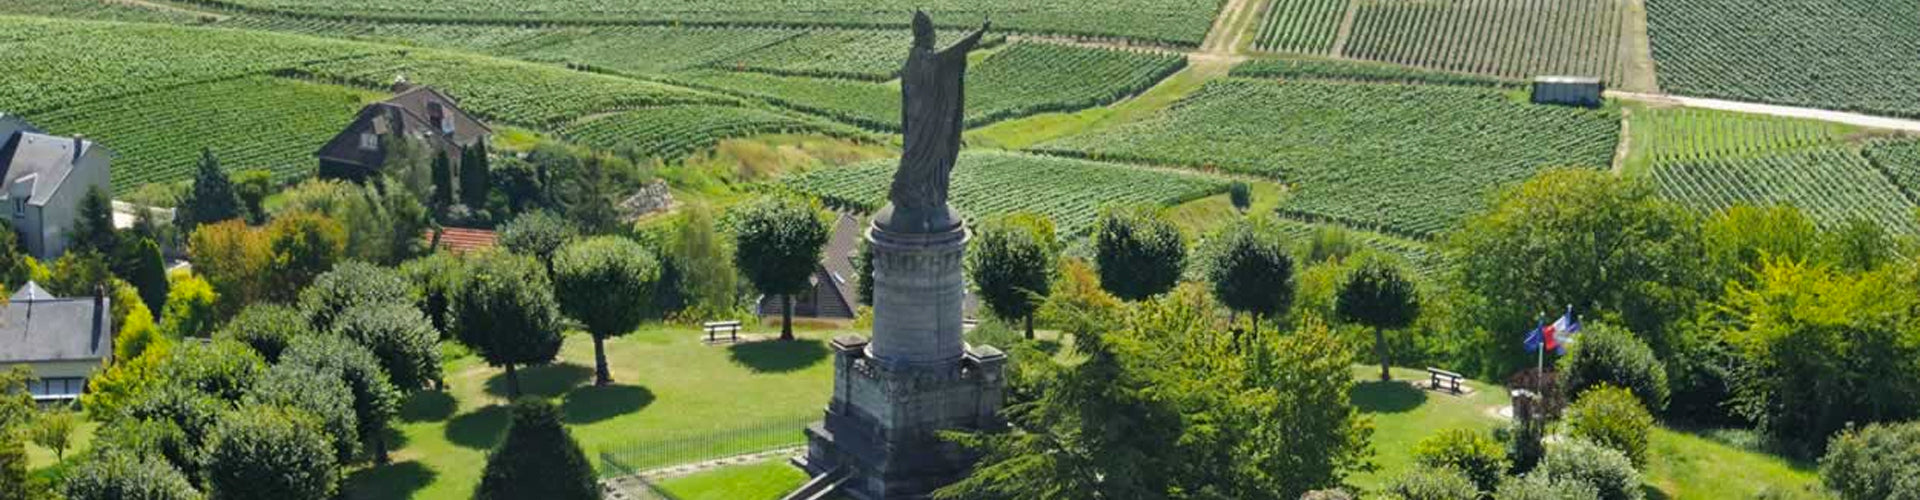 Statue of Pope Urban II Ovelooking Vines in Chatillon sur Marne